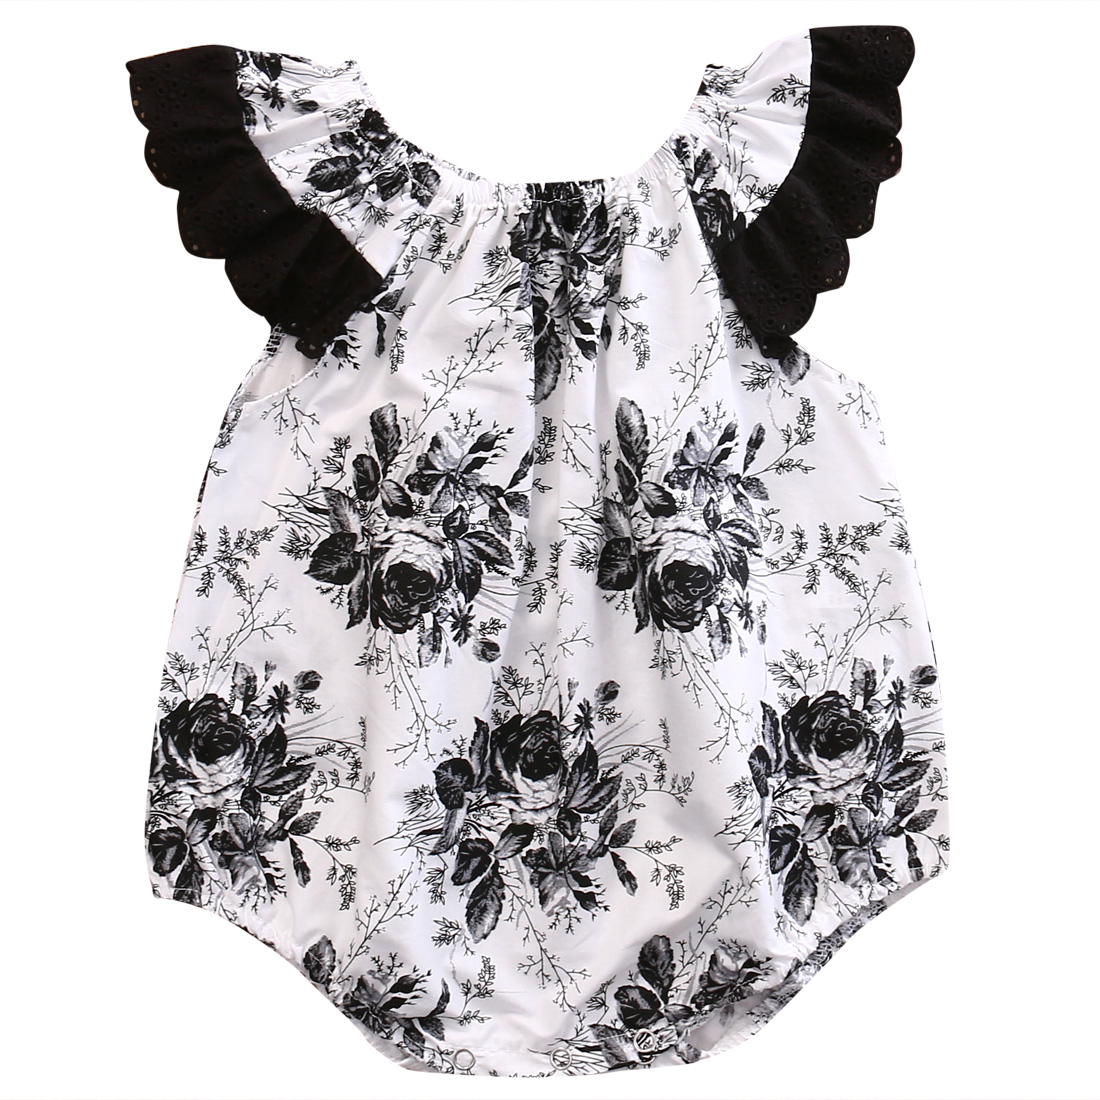 Newborn Baby Girls Lace Floral Romper Jumpsuit One-Pieces Summer Sleeveless Clothes 0-24M